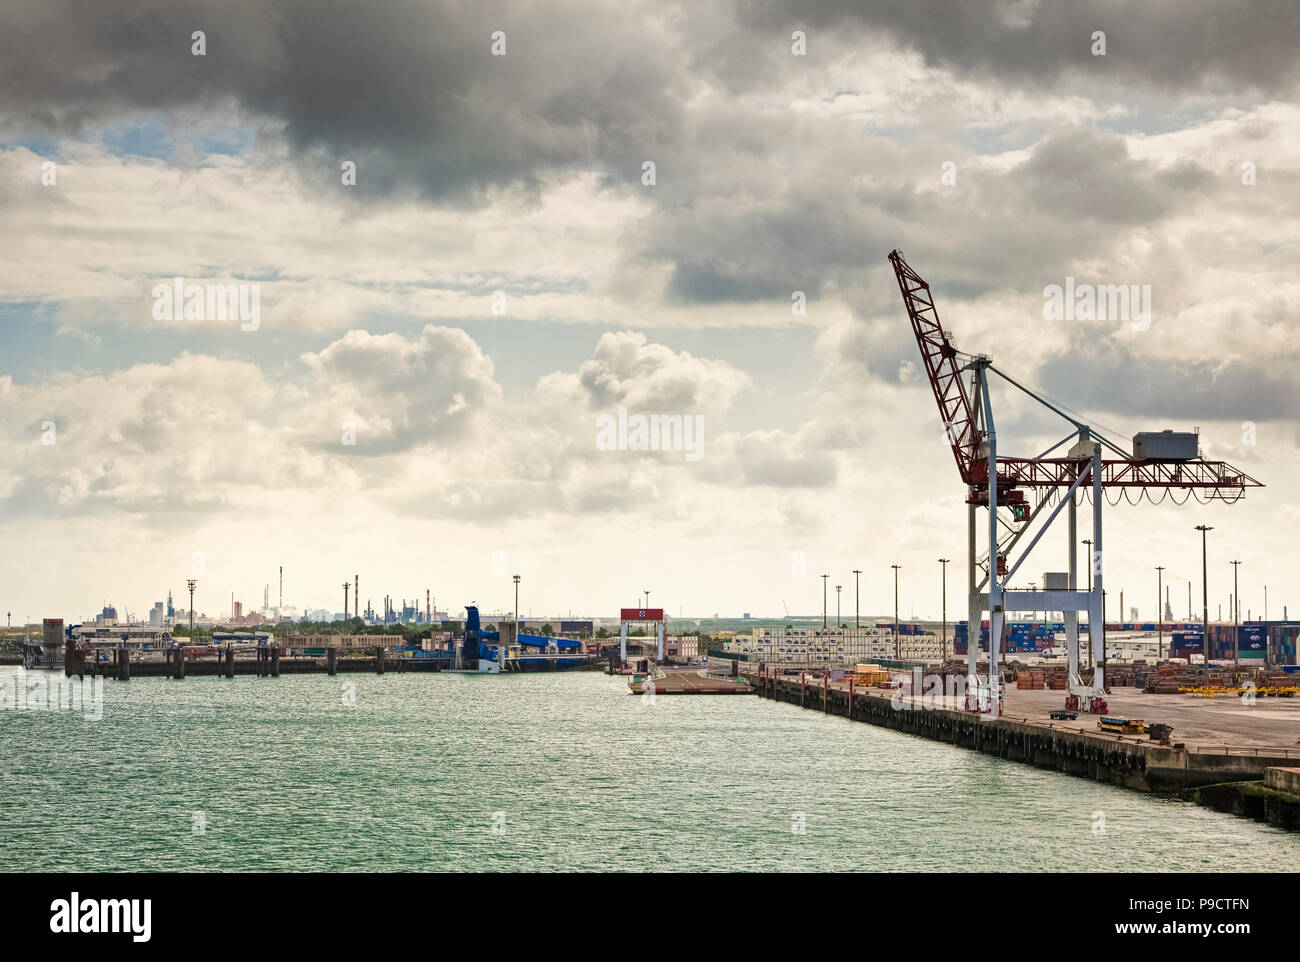 The ferry port terminal and industrial docks of Dunkirk, France, Europe - Stock Image